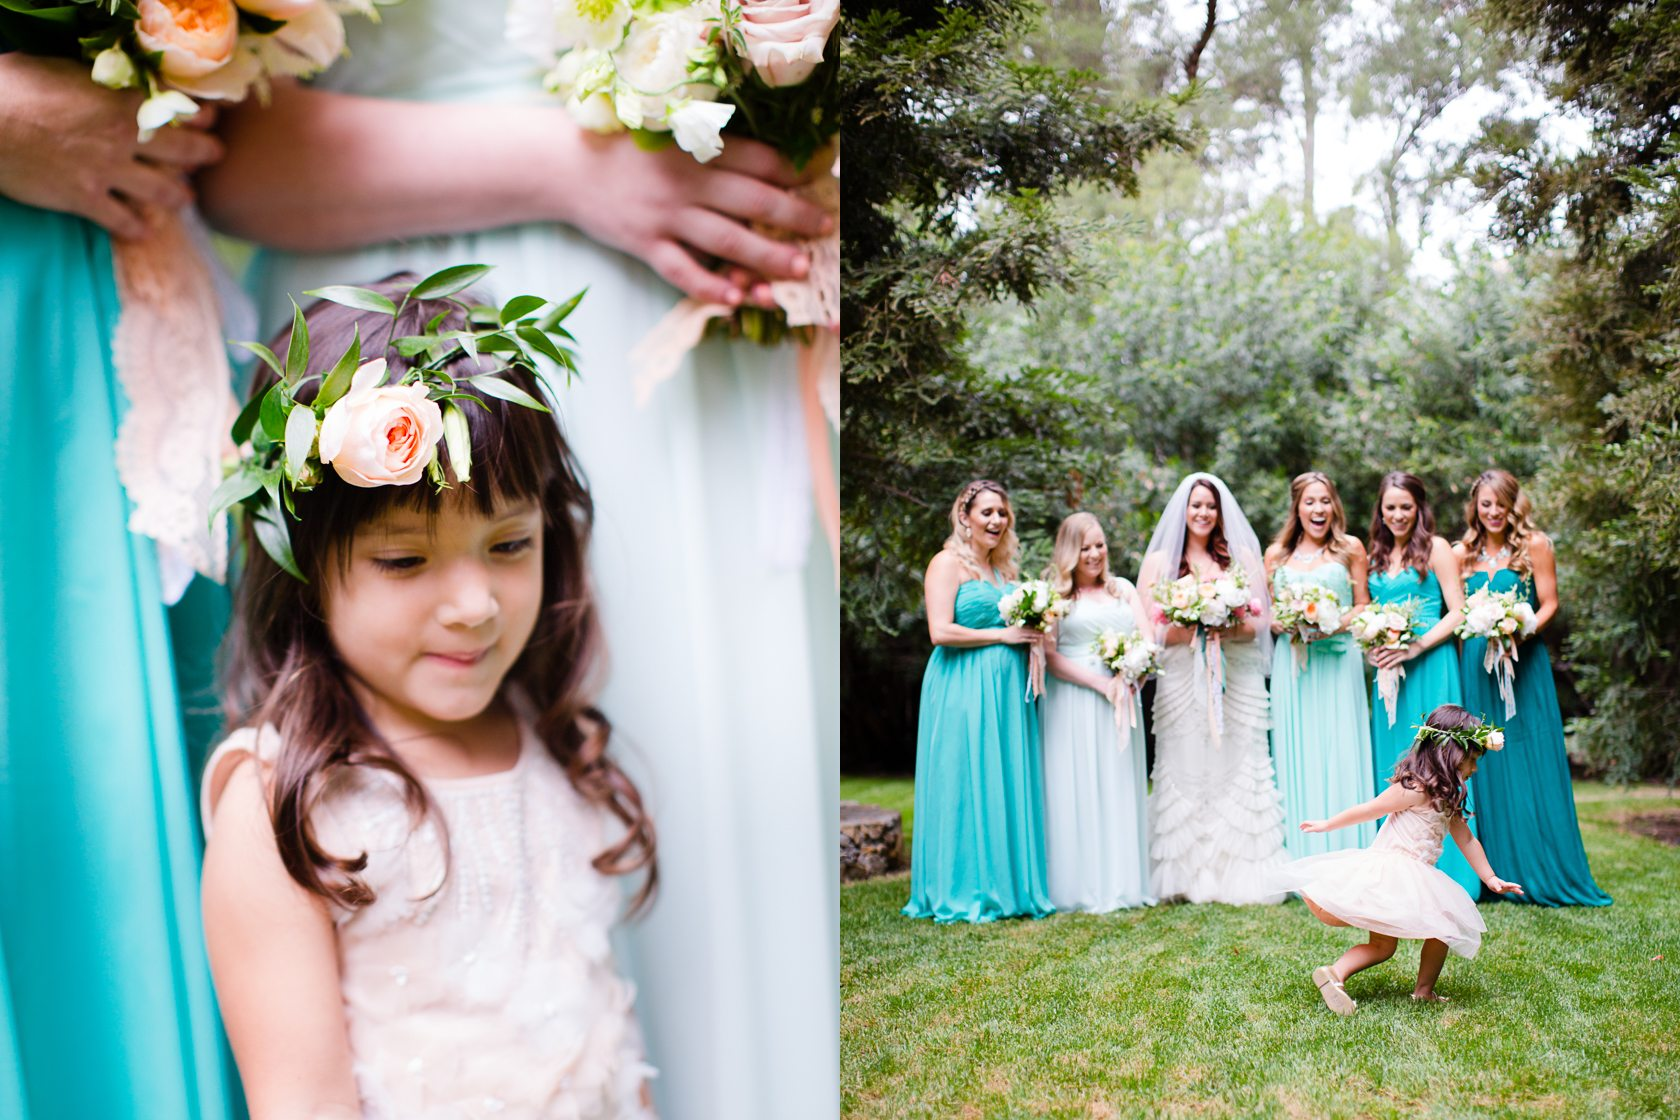 The_Printed_Palette_Wedding_at_Calamigos_Ranch_019.jpg